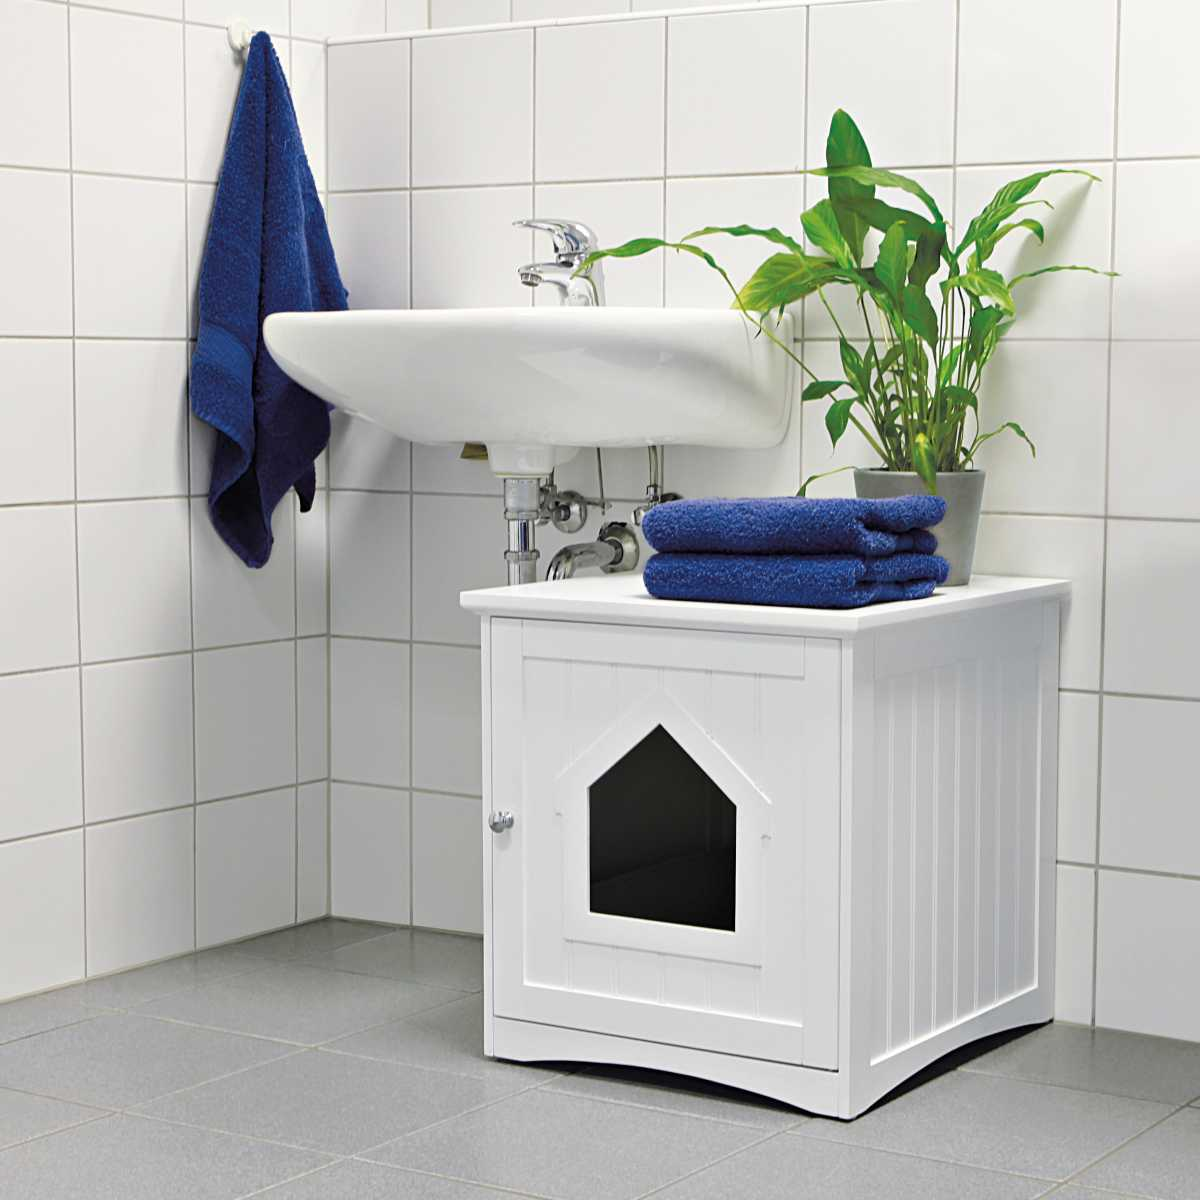 Cat Furniture For Sale Wooden Cat Toilet Litterbox Cabinet White